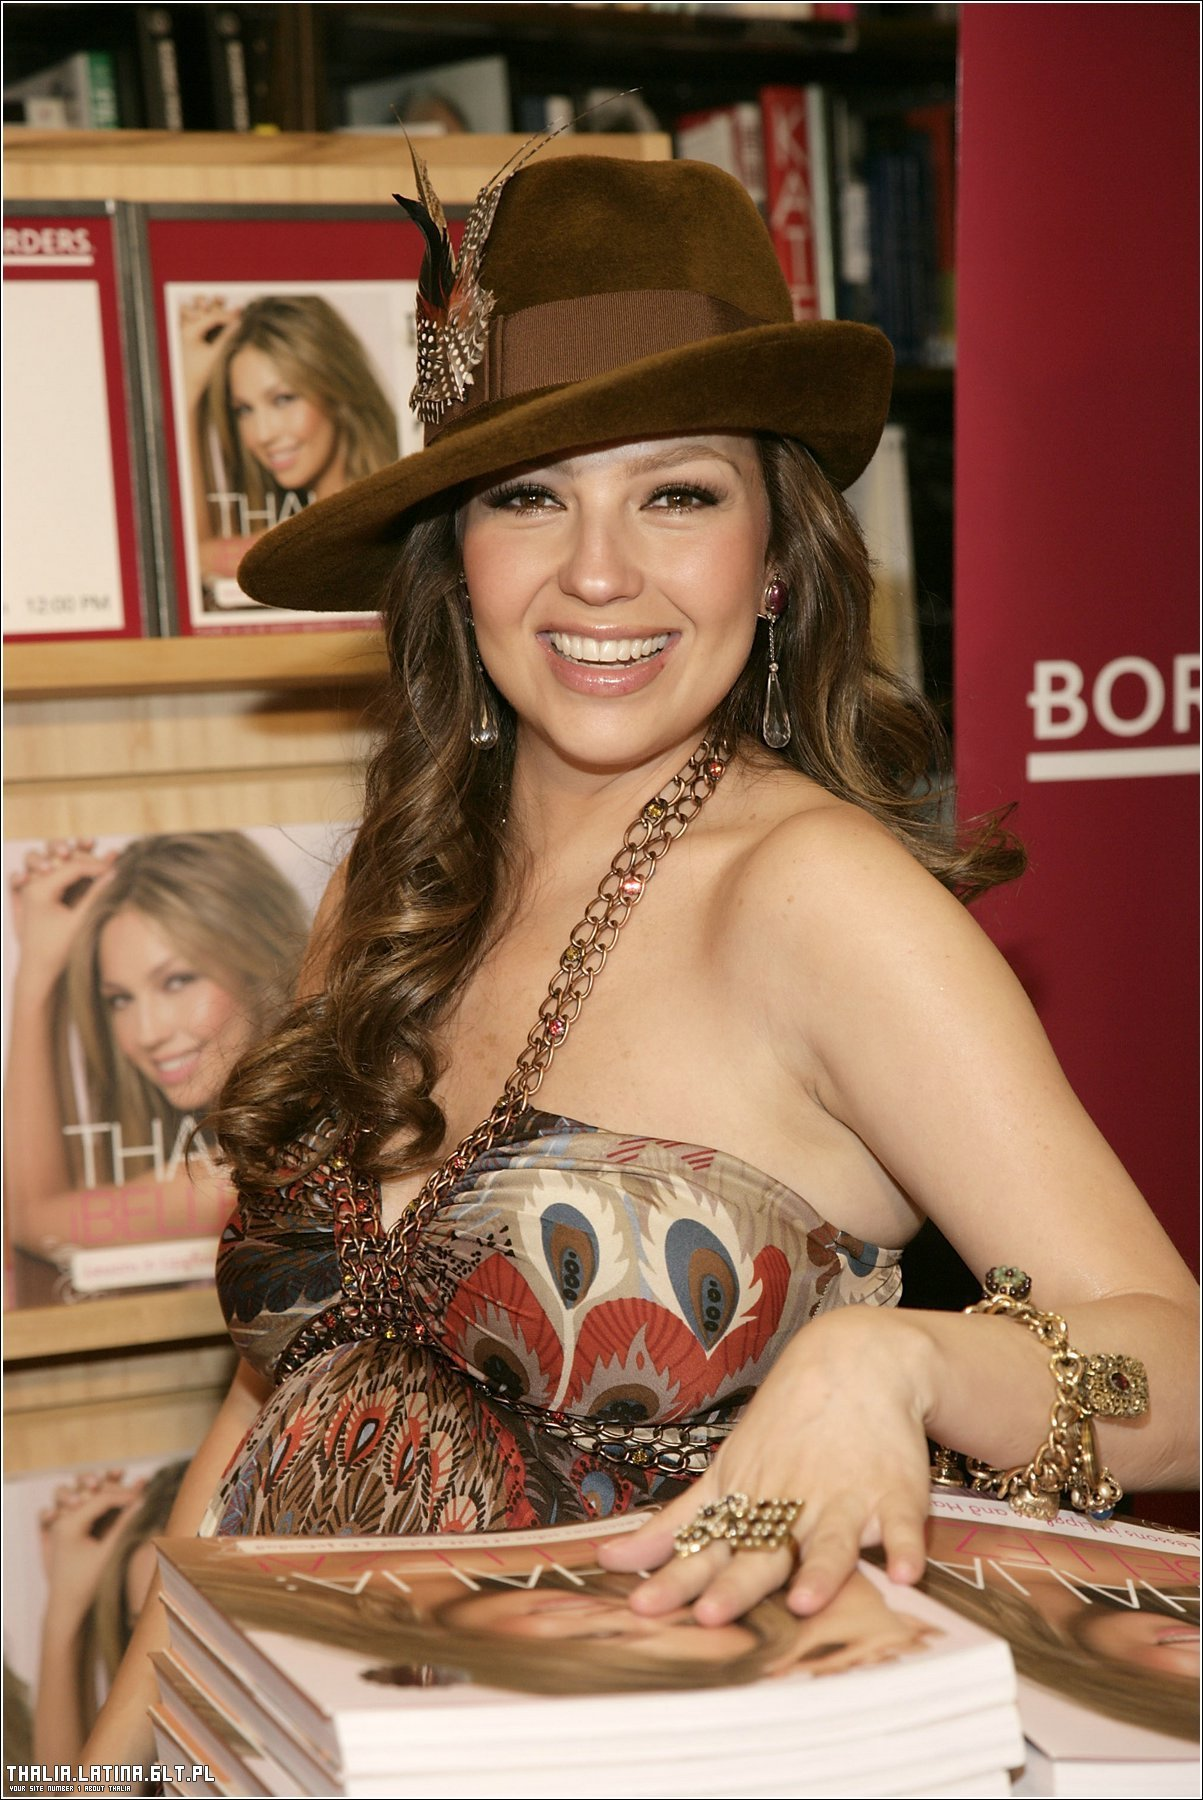 https://i2.wp.com/images2.fanpop.com/images/photos/6700000/Thalia-thalia-6709153-1203-1800.jpg